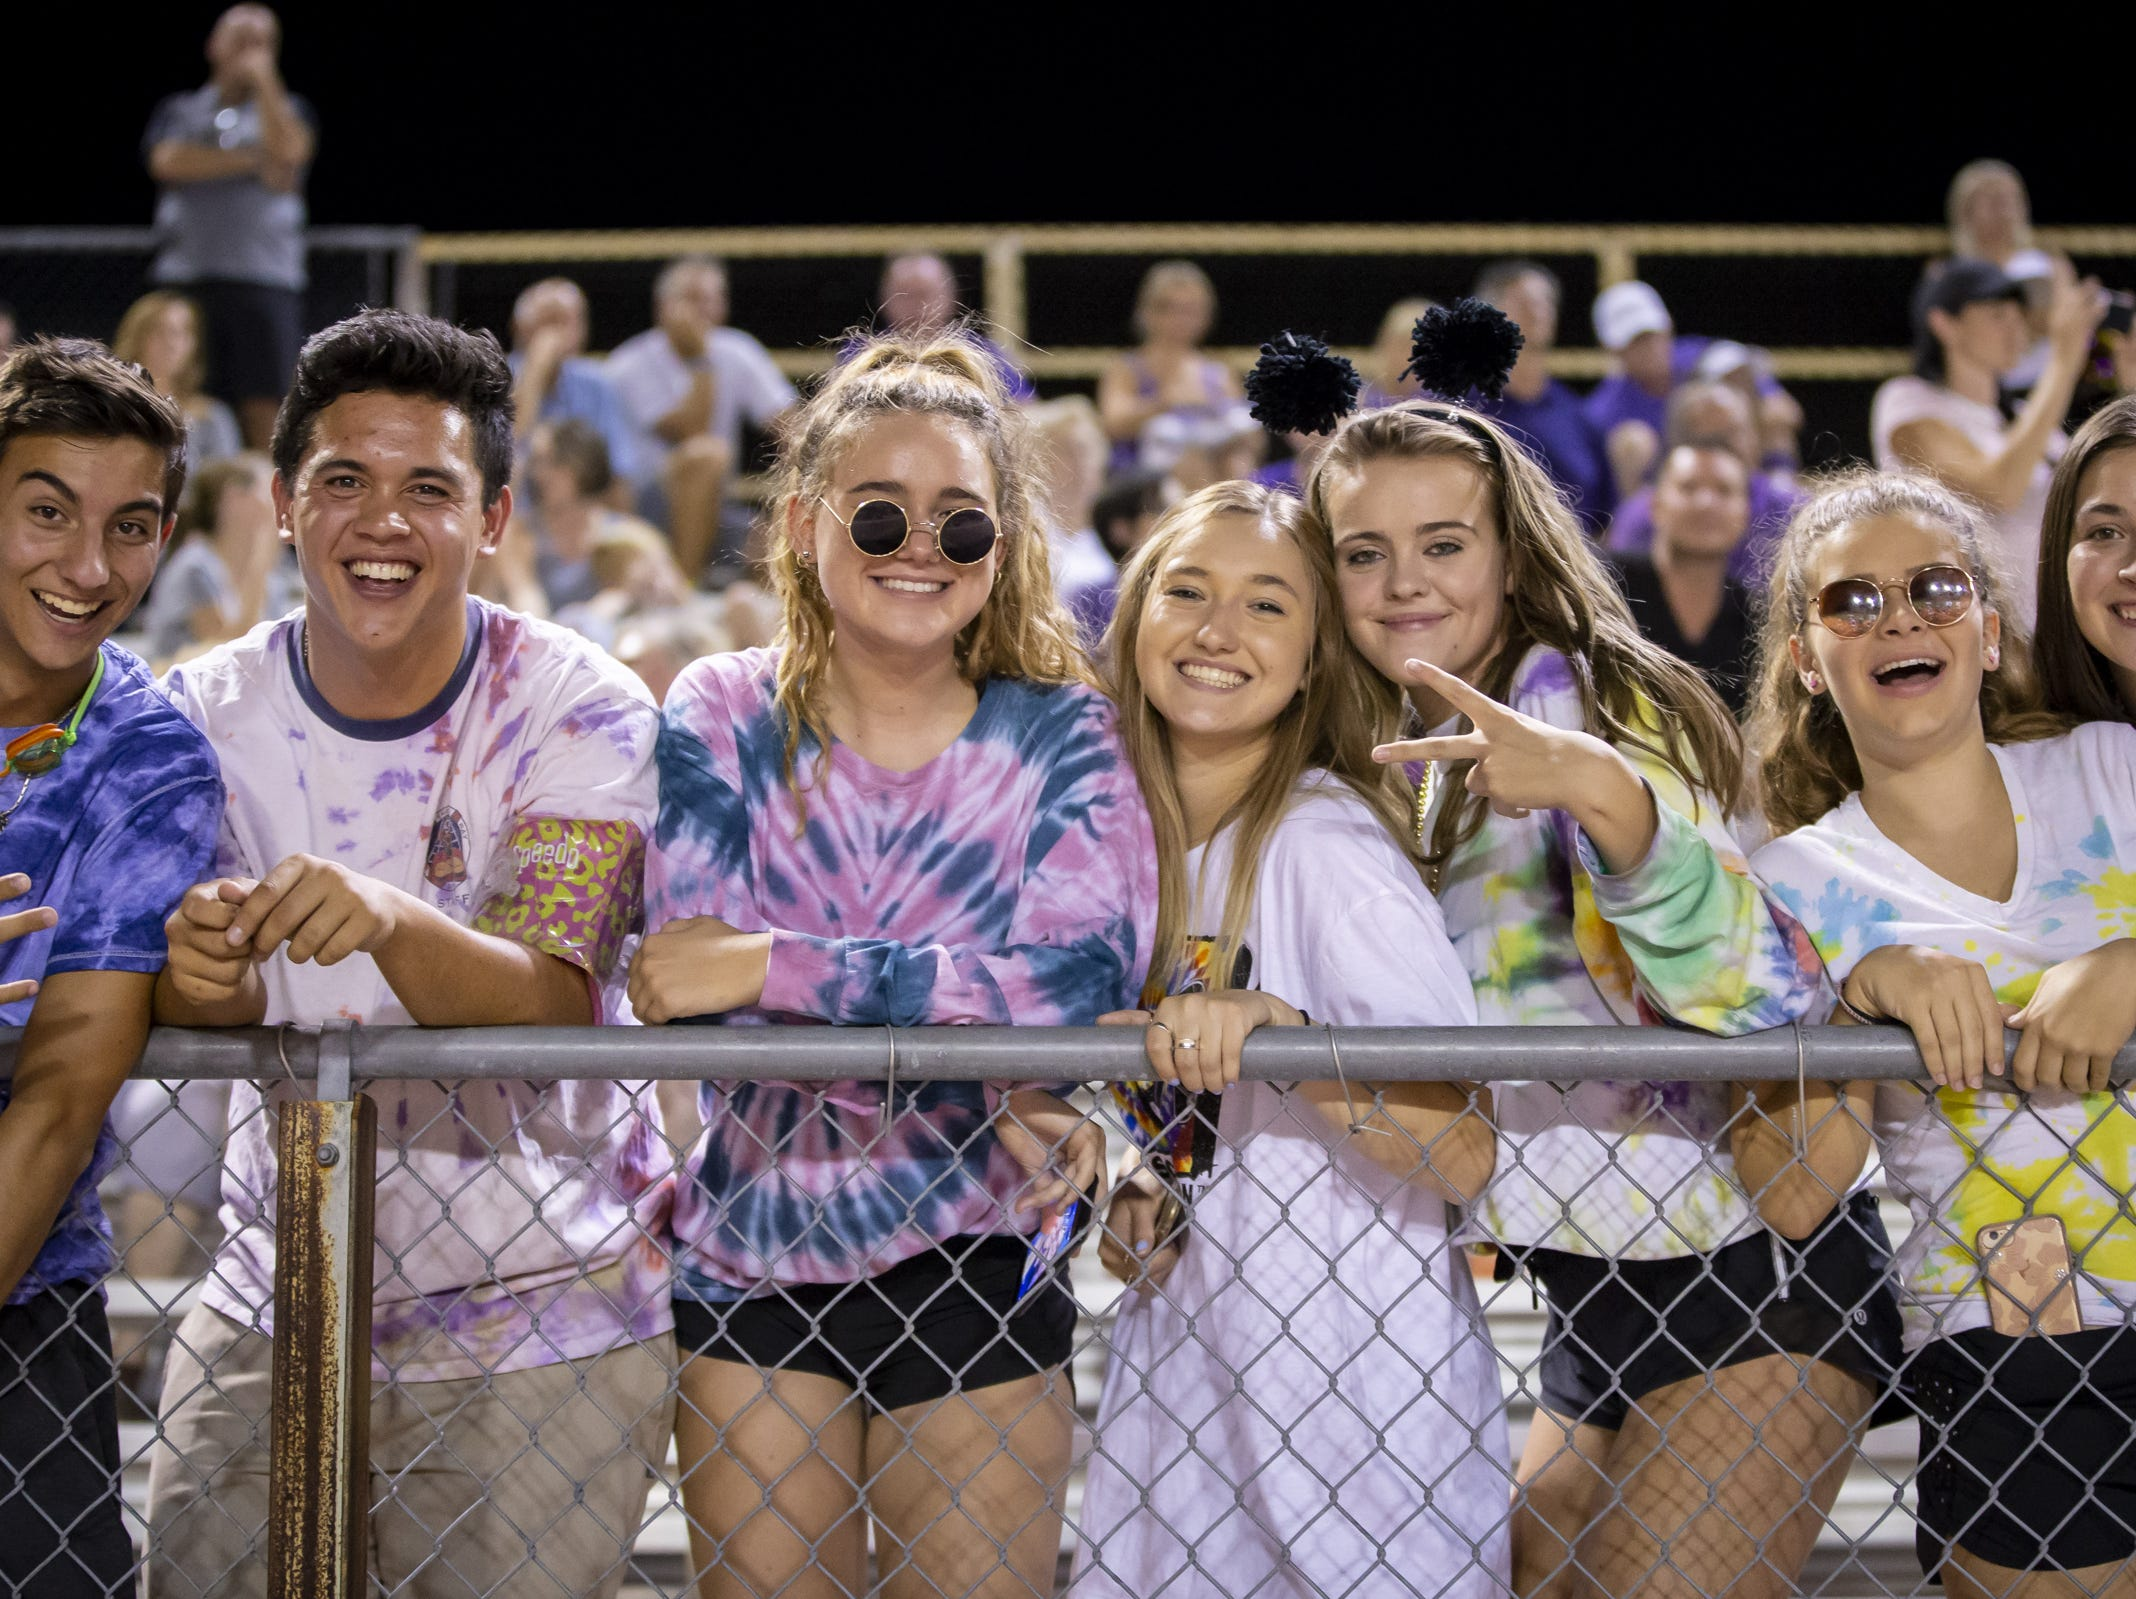 Notre Dame Prep fans during the game against the Gilbert Tigers at Gilbert High School on Friday, August 31, 2018 in Gilbert, Arizona.